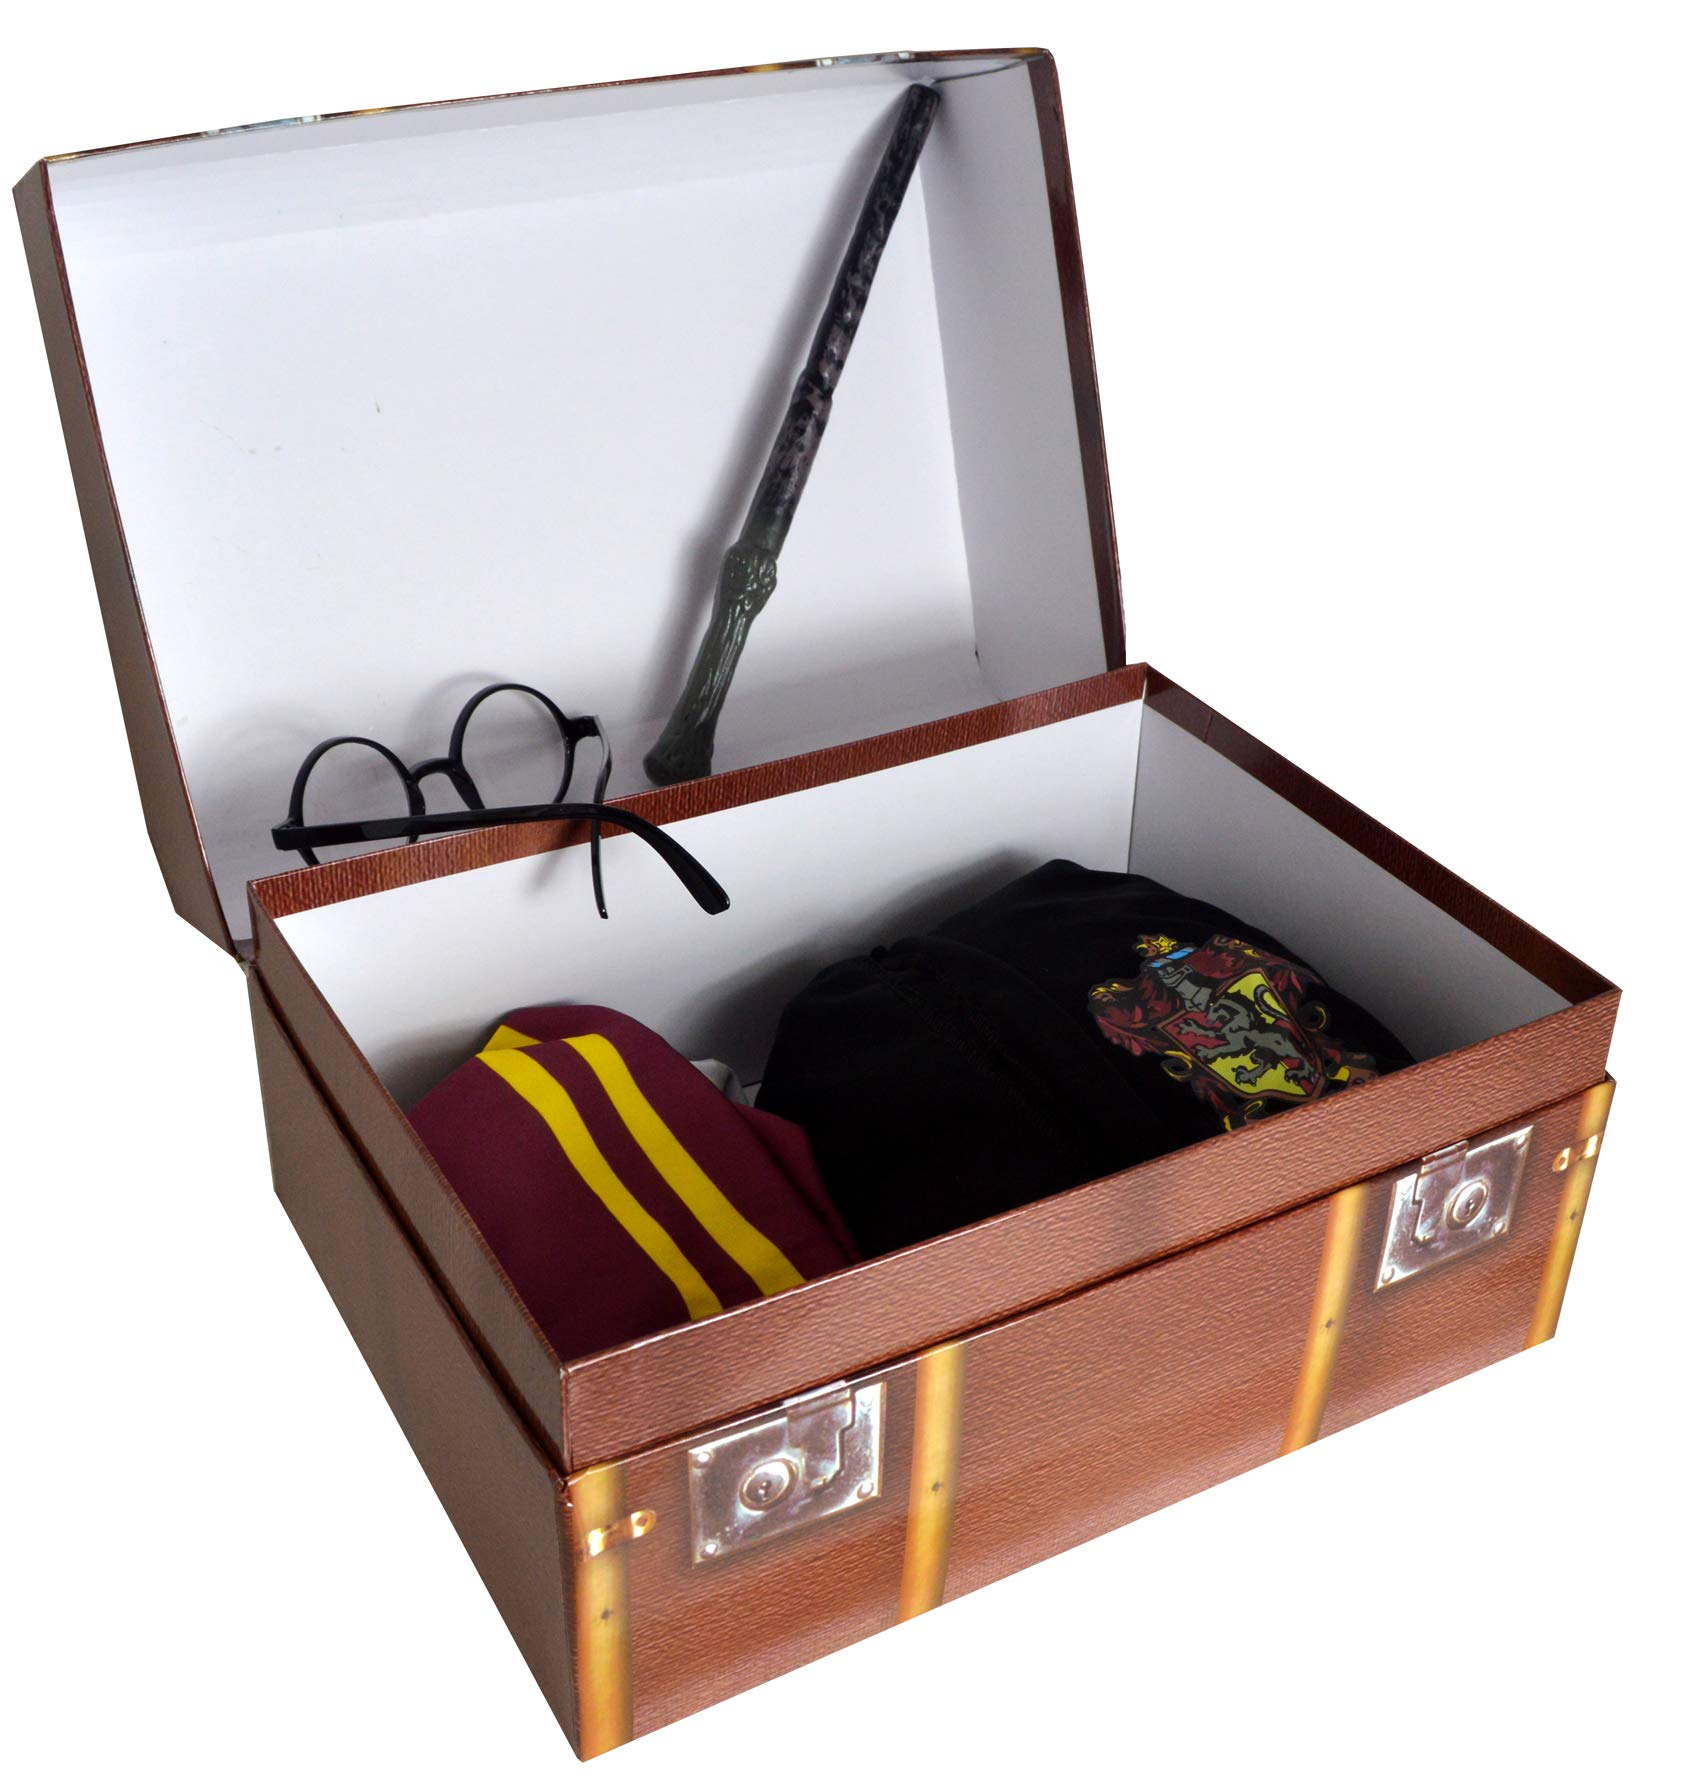 Rubie's Harry Potter Dress-Up Trunk by Imagine by Rubie's (Image #6)